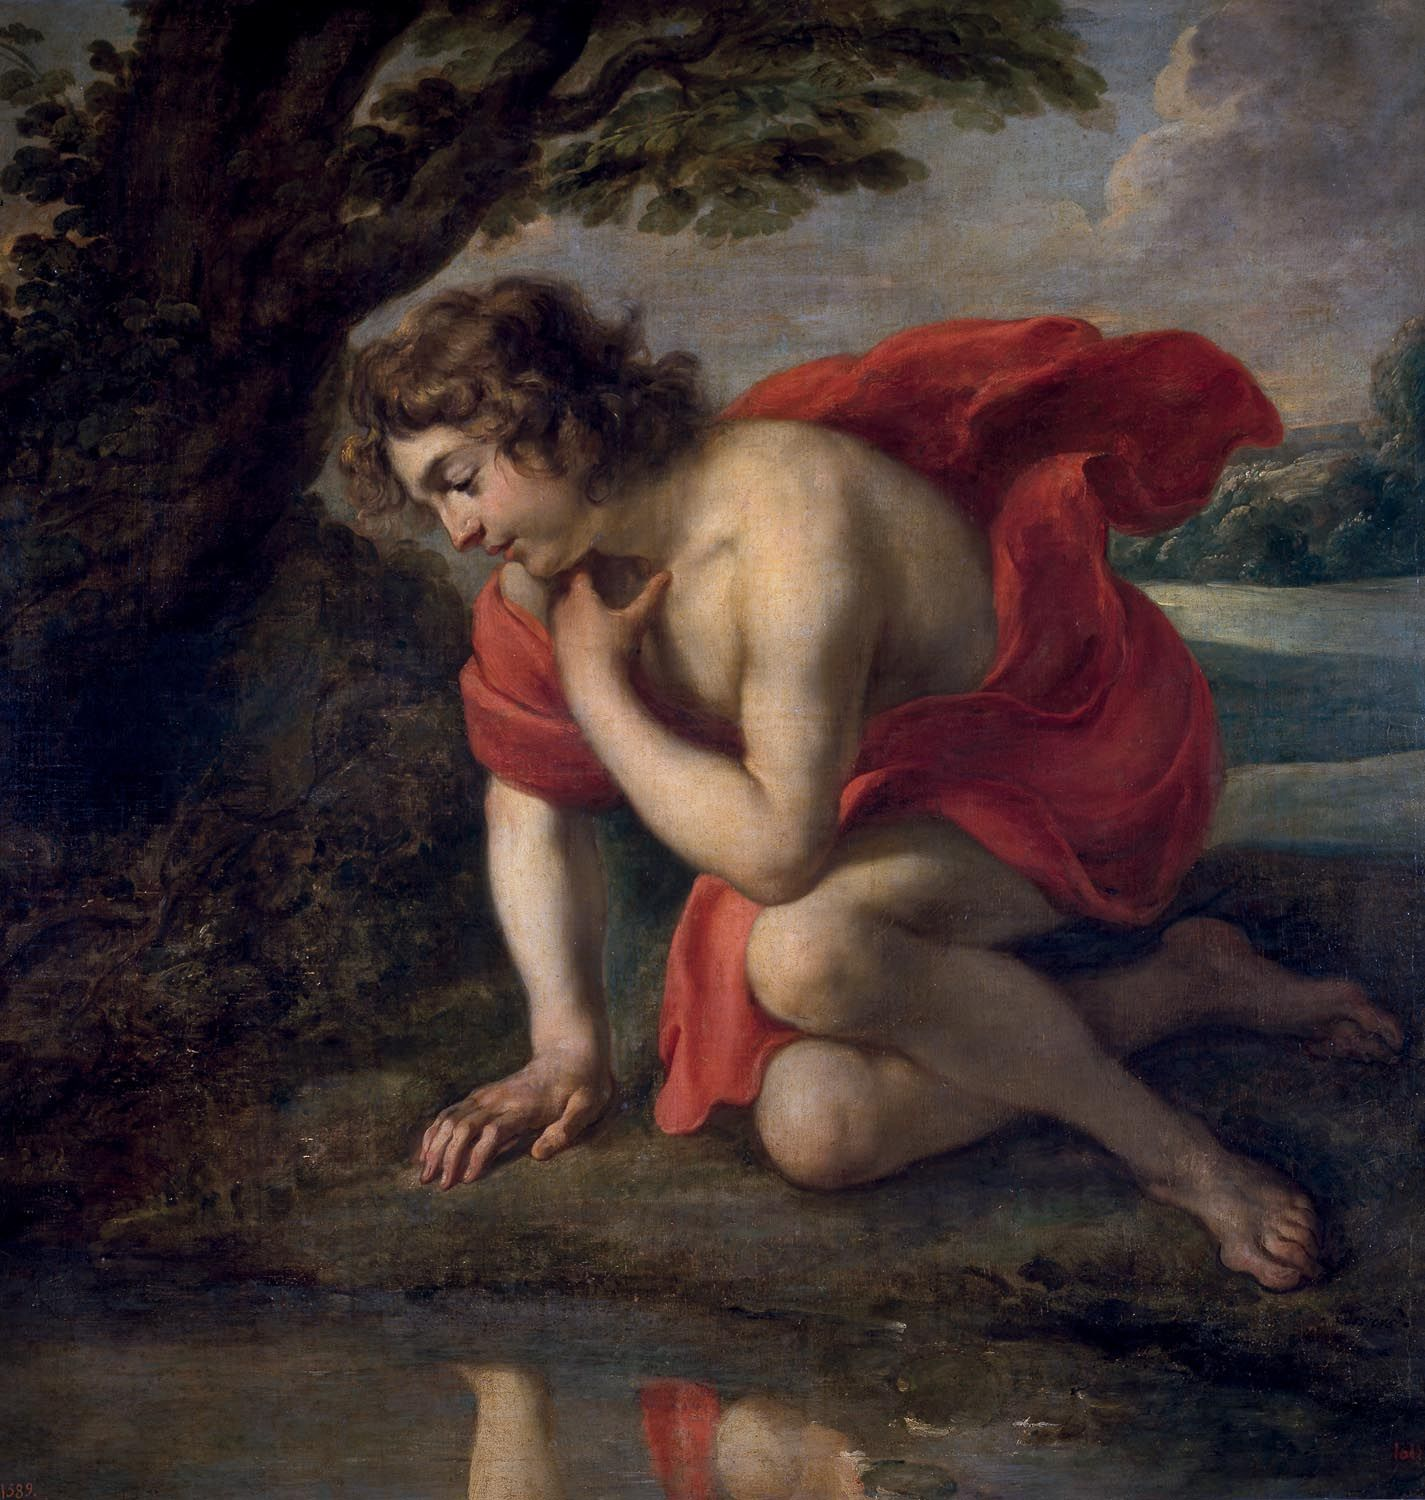 jan cossiers narciso museo de prado madrid narcissus jan cossiers narciso museo de prado madrid narcissus madrid